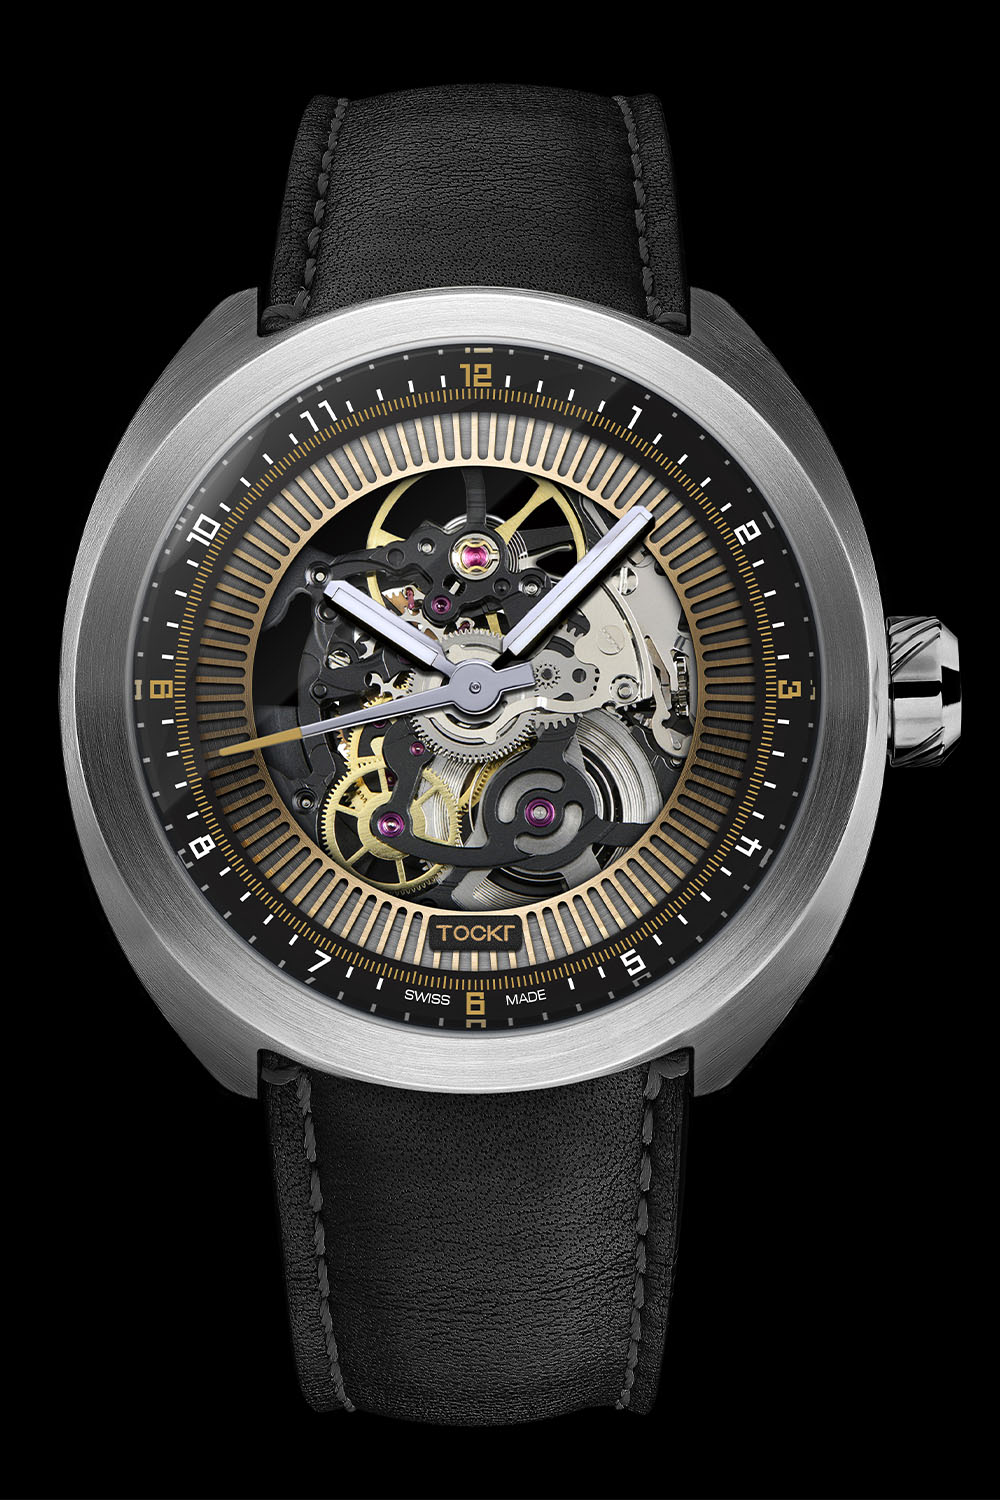 Tockr Limited C-47 Skeleton Watches